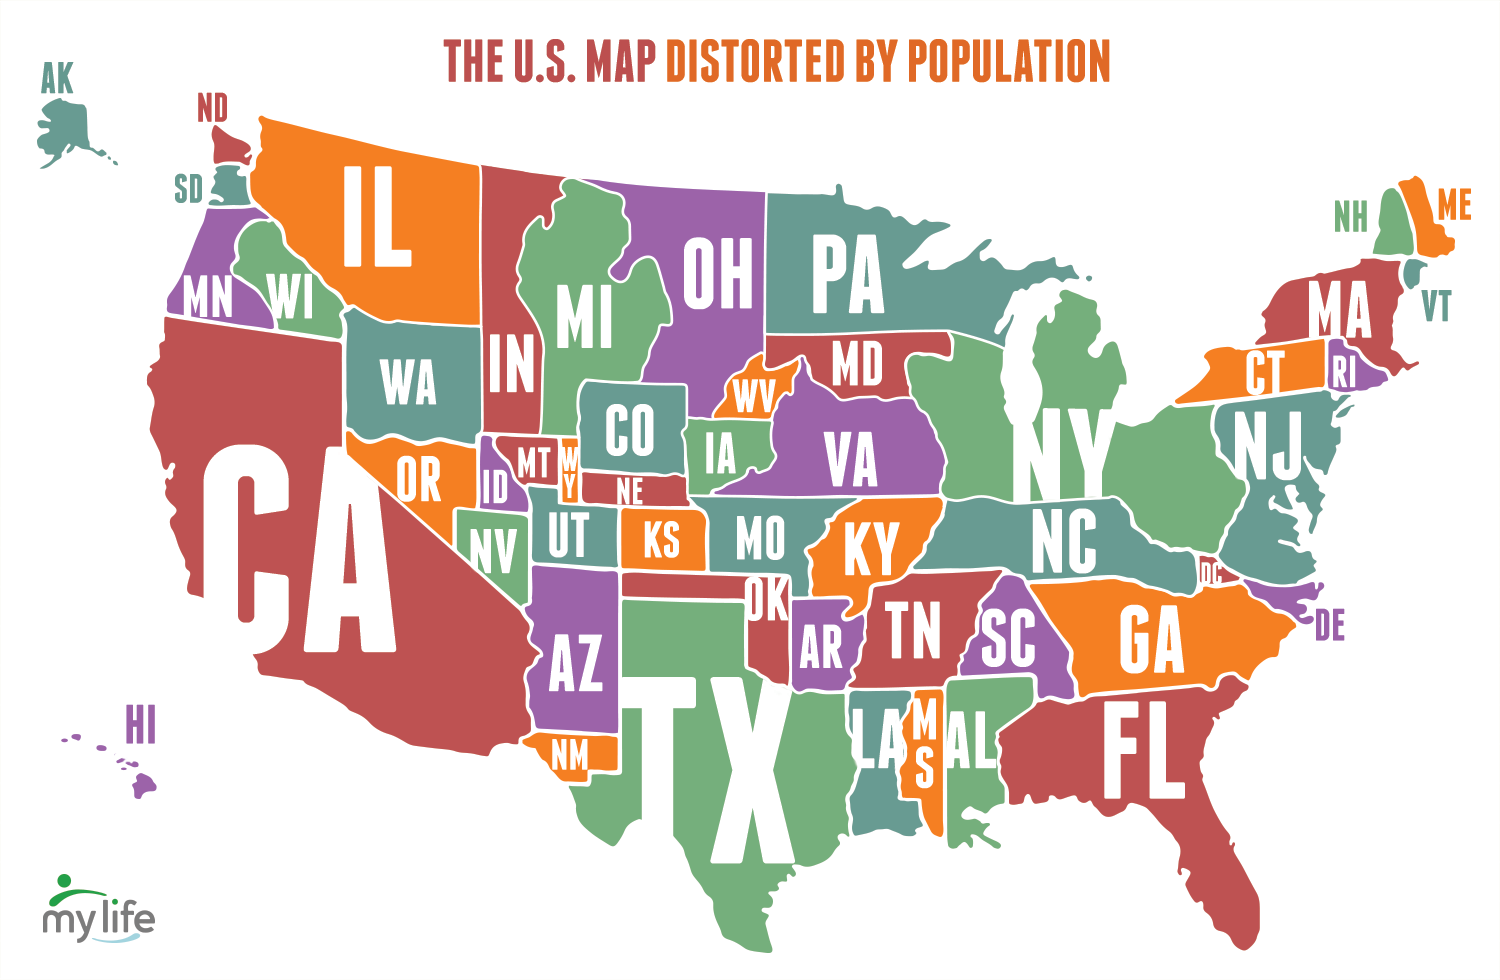 Map Of The United States Distorted By Population - Maps of the us states